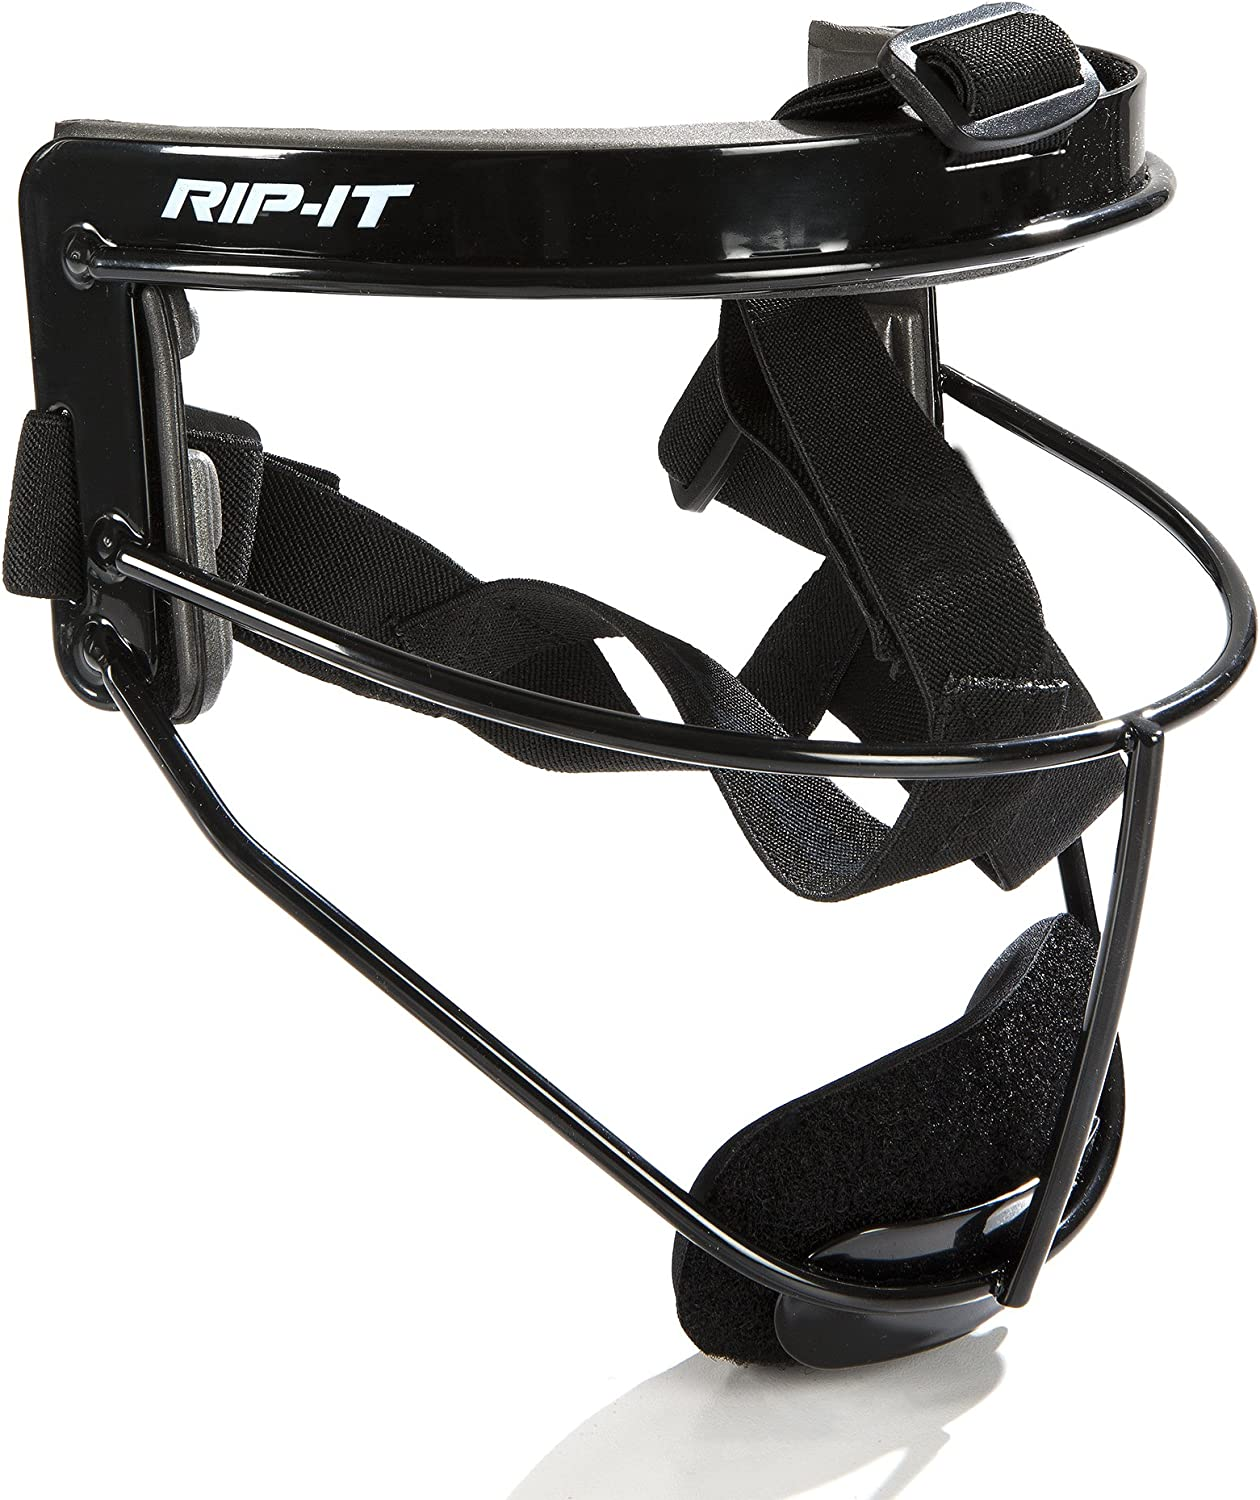 RIP-IT Defense Softball Fielder's Mask – Lightweight Secure Fit Provides Maximum Protection and Comfort – Does Not Obstruct View – Ponytail Friendly : Baseball Catchers Masks : Sports & Outdoors